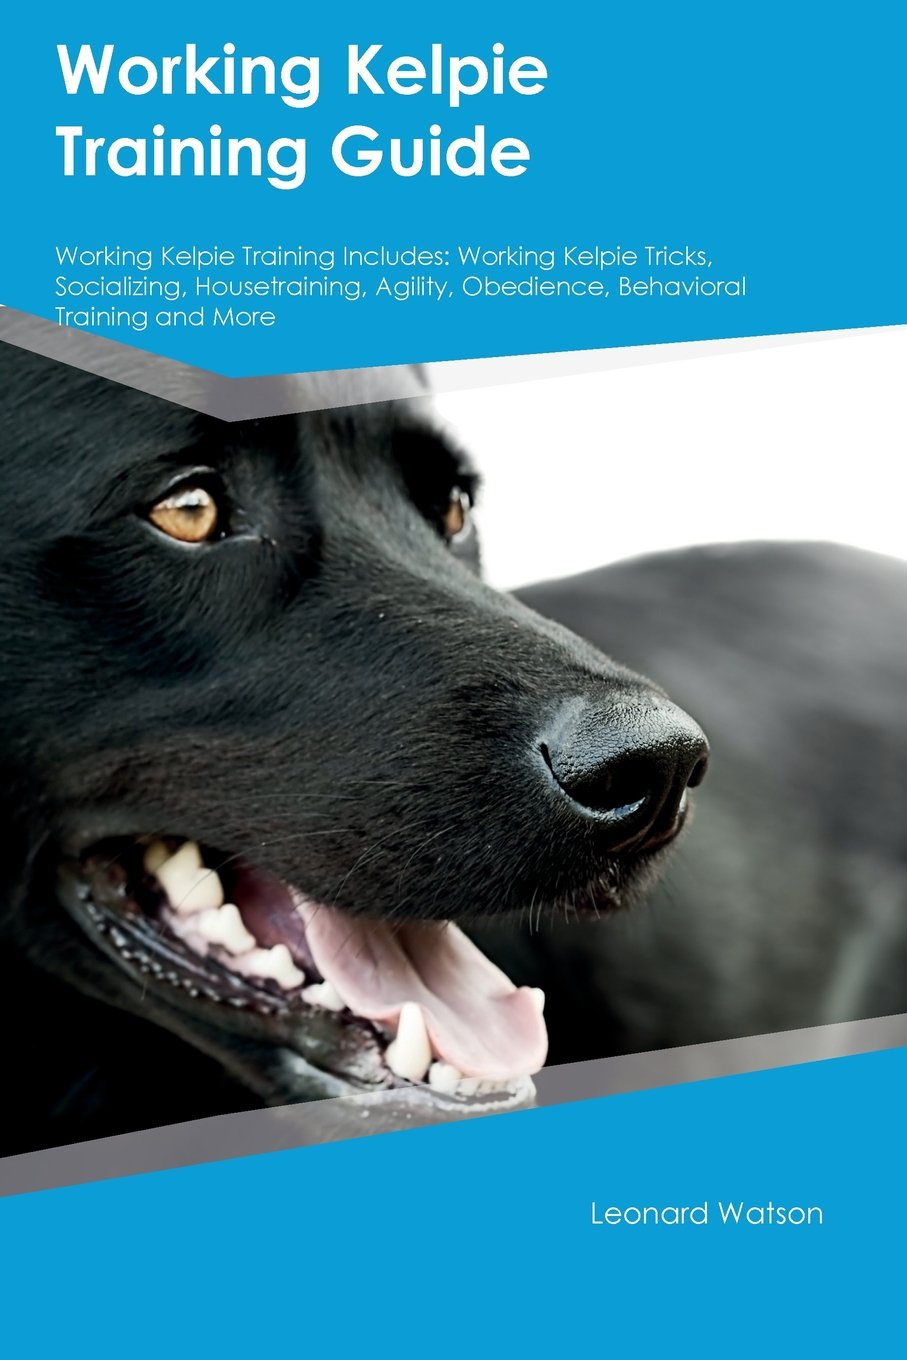 Working Kelpie Training Guide Working Kelpie Training Includes: Working Kelpie Tricks, Socializing, Housetraining, Agility, Obedience, Behavioral Training and More ebook